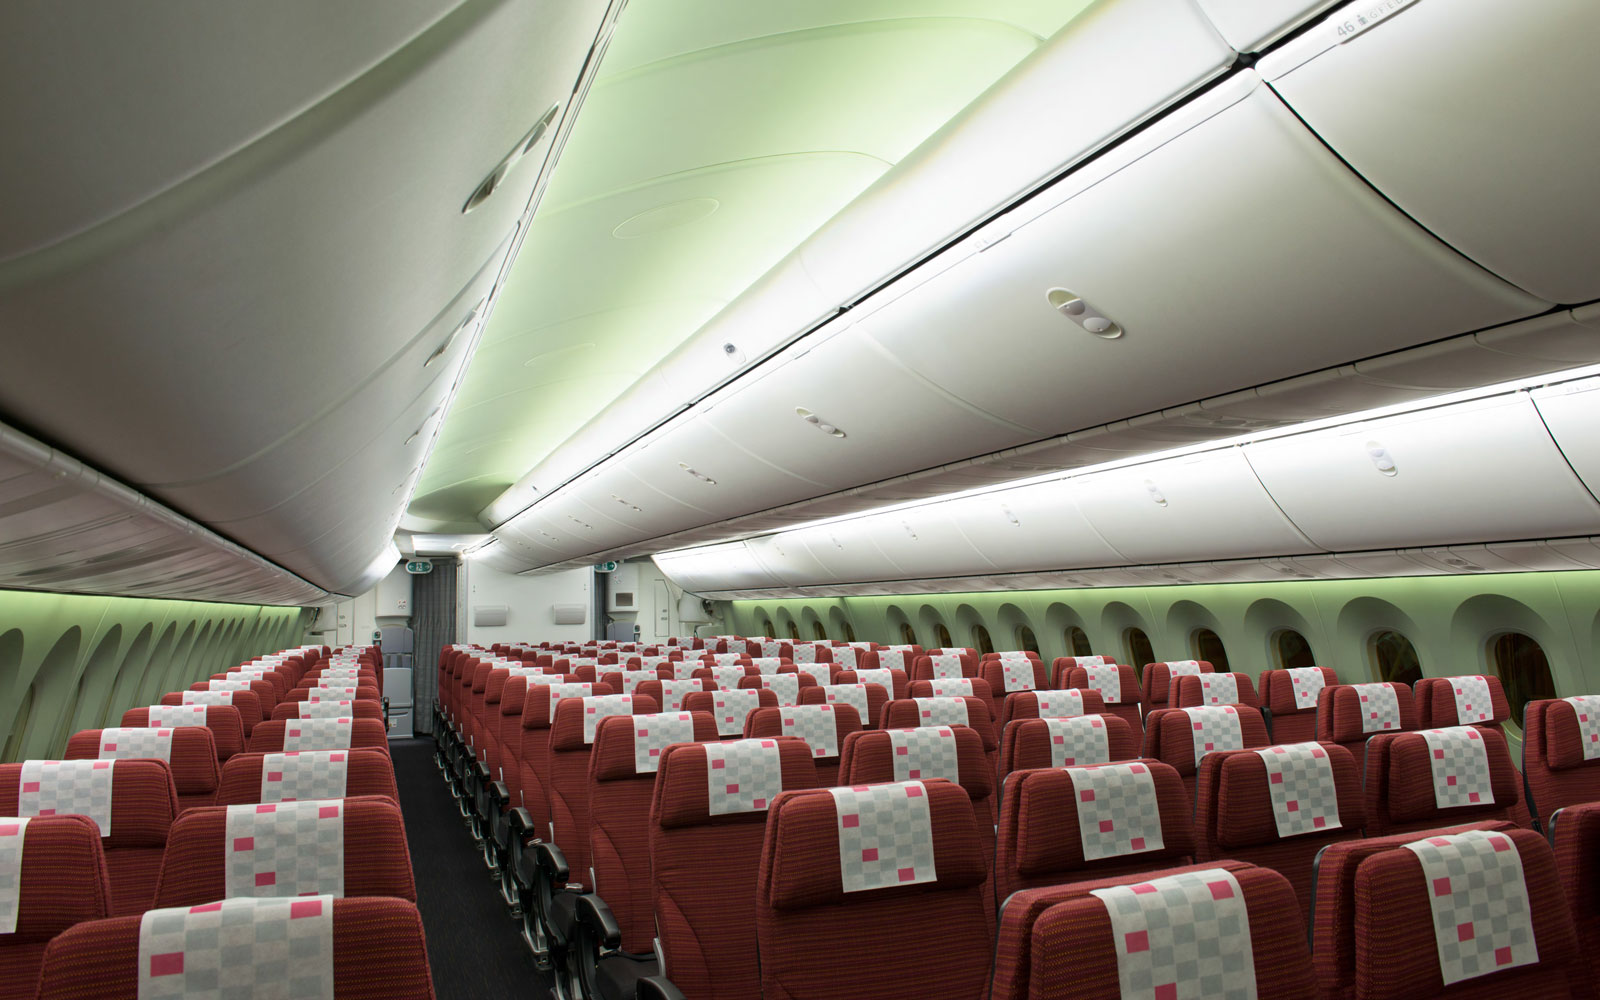 Japan Airlines' Sky Wider seats.